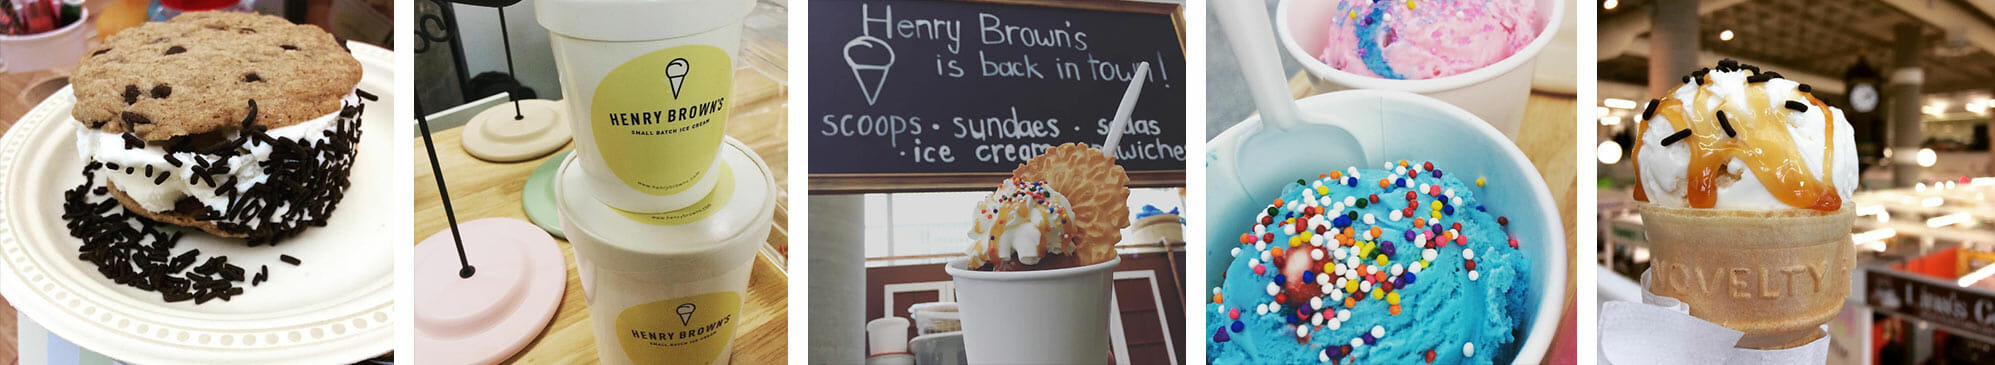 henry-browns